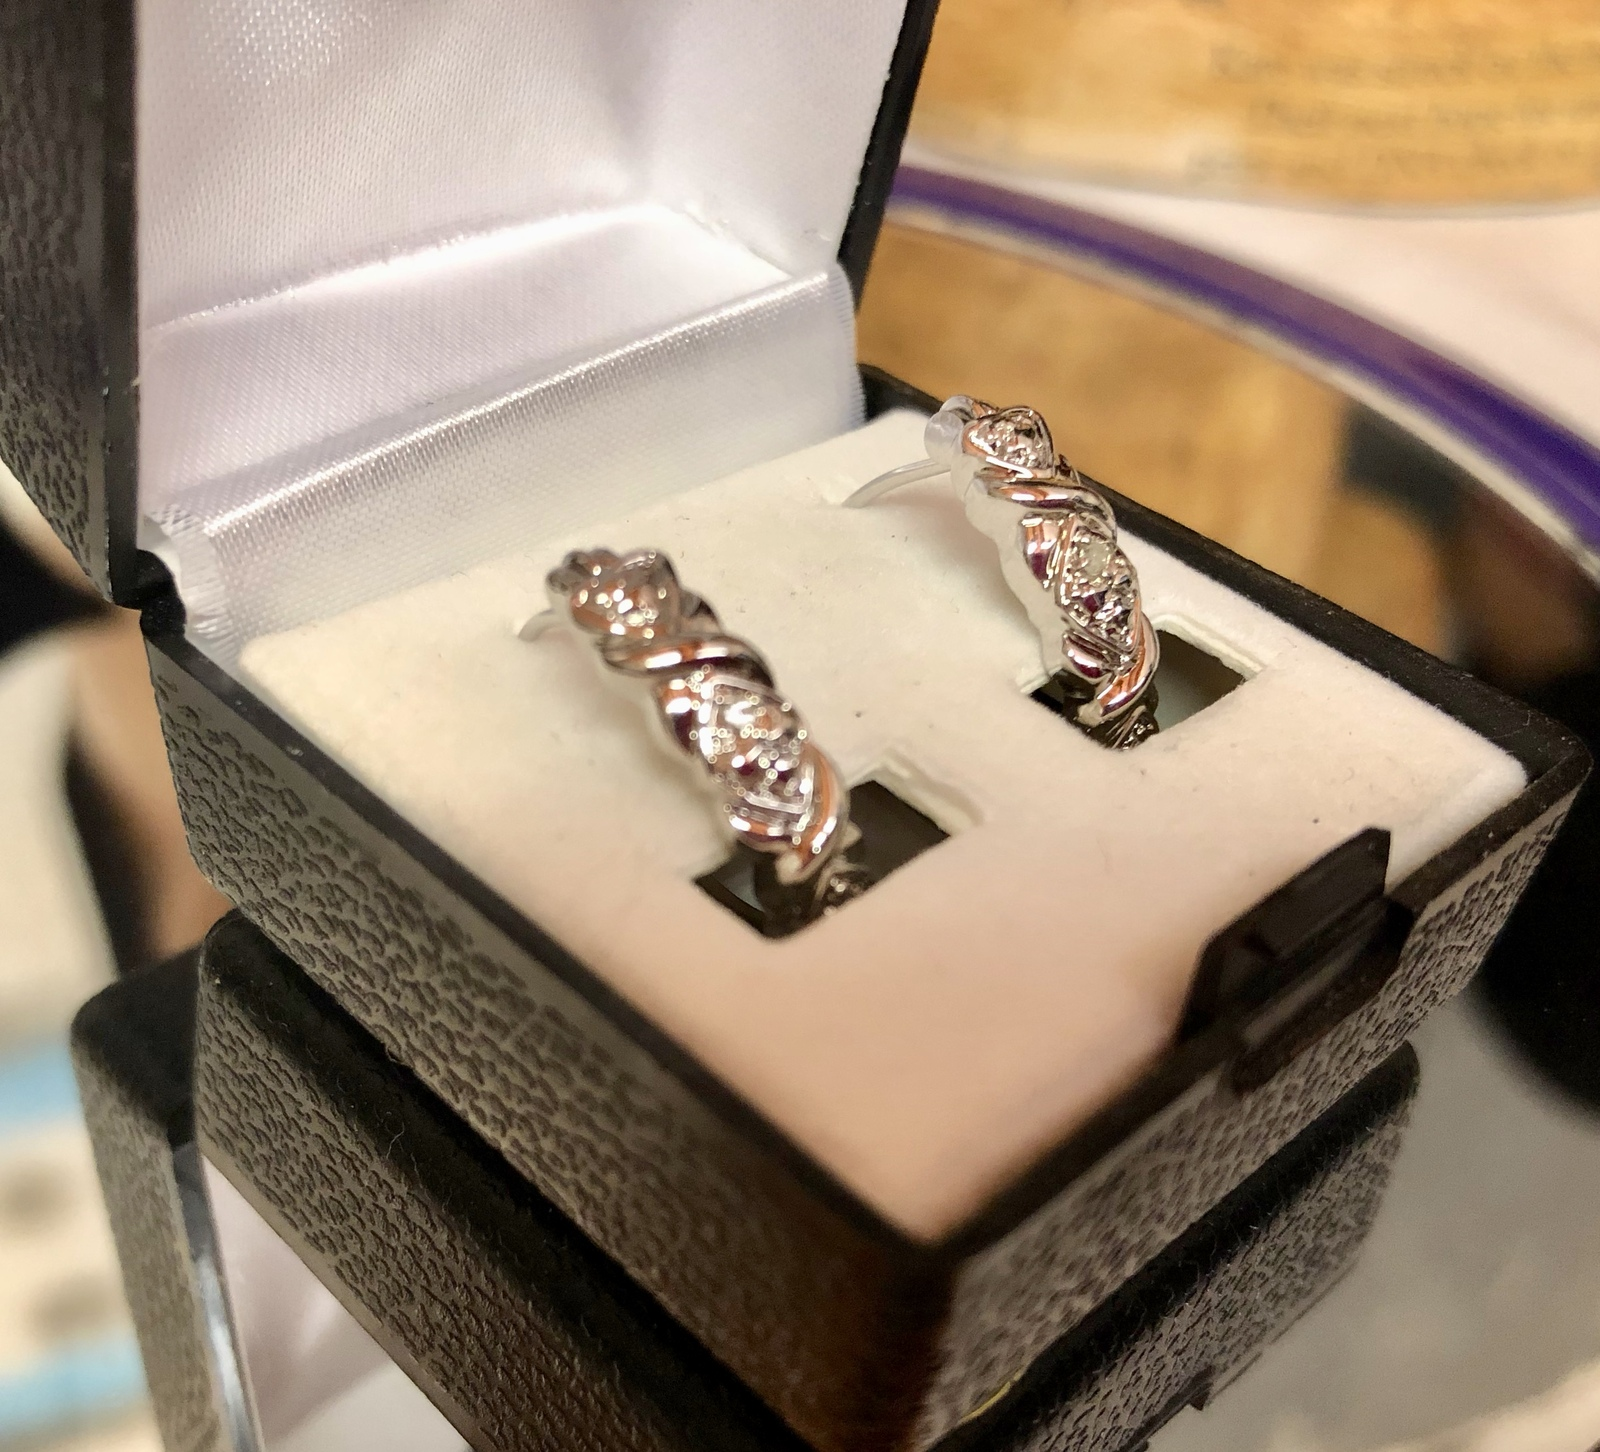 VTG X's/Diamond Shapes Rhodium Plated Leverback Pierced Hoop Earrings/Gift Case image 3